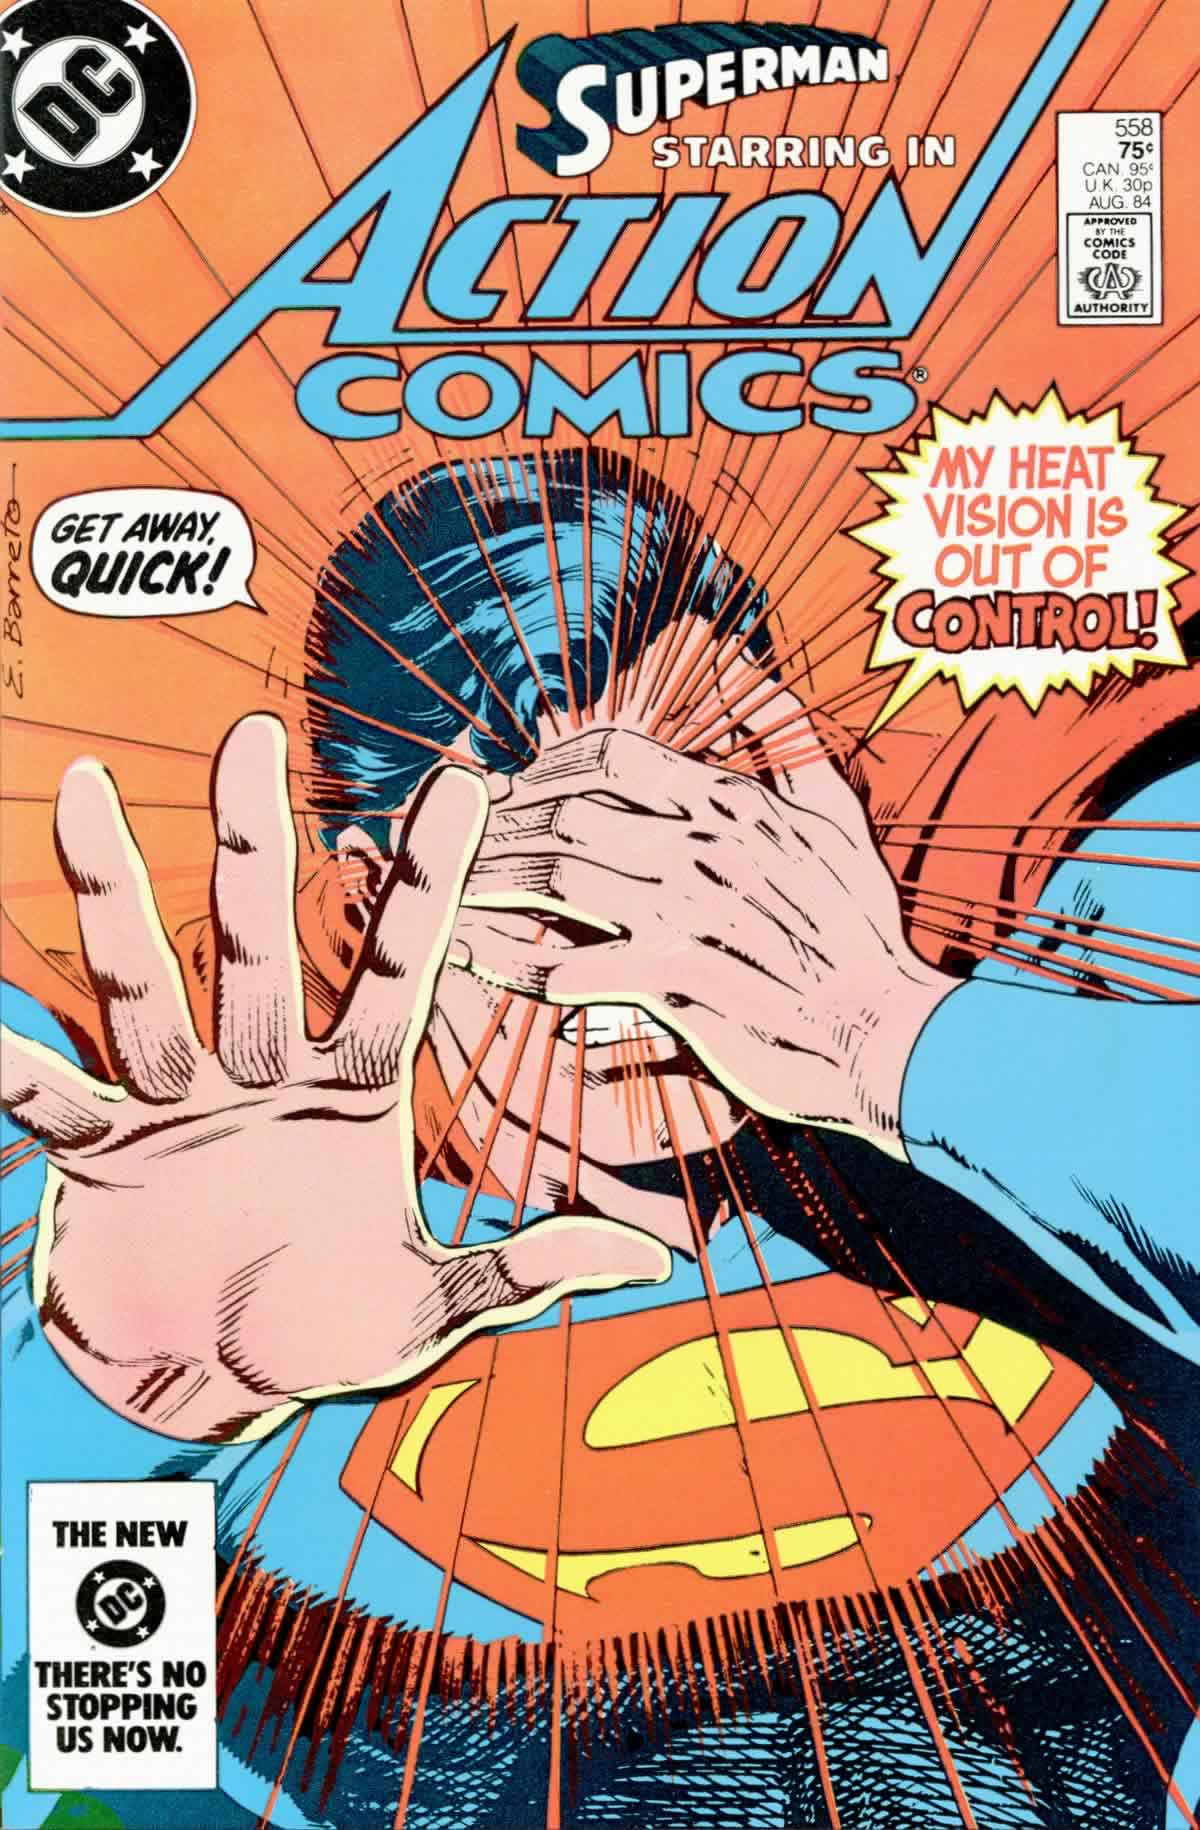 Read online Action Comics (1938) comic -  Issue #558 - 1